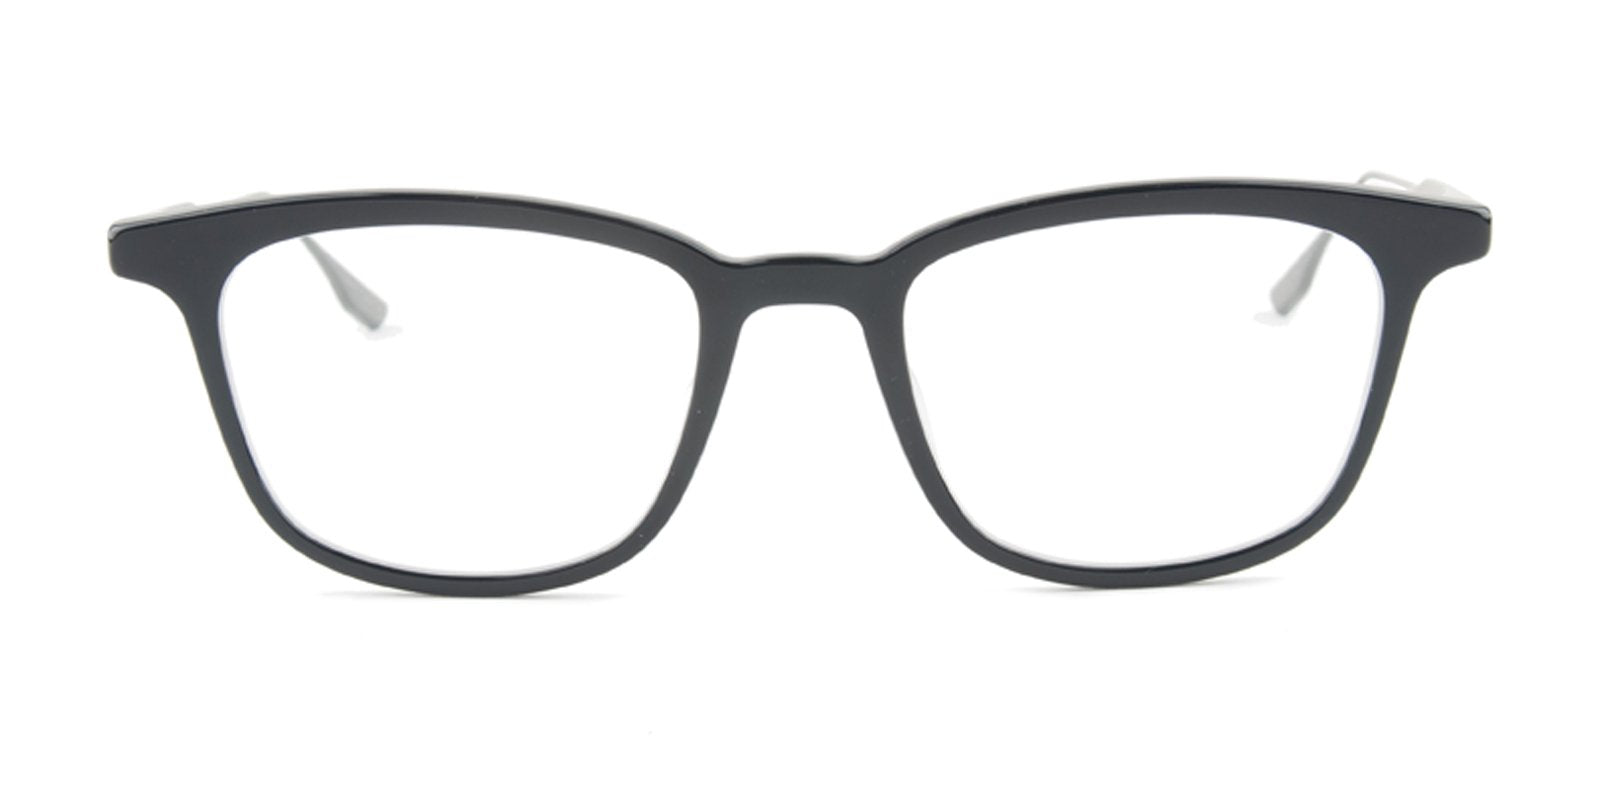 Dita - Floren Blue Rectangular Unisex Eyeglasses - 52mm-Eyeglasses-Designer Eyes